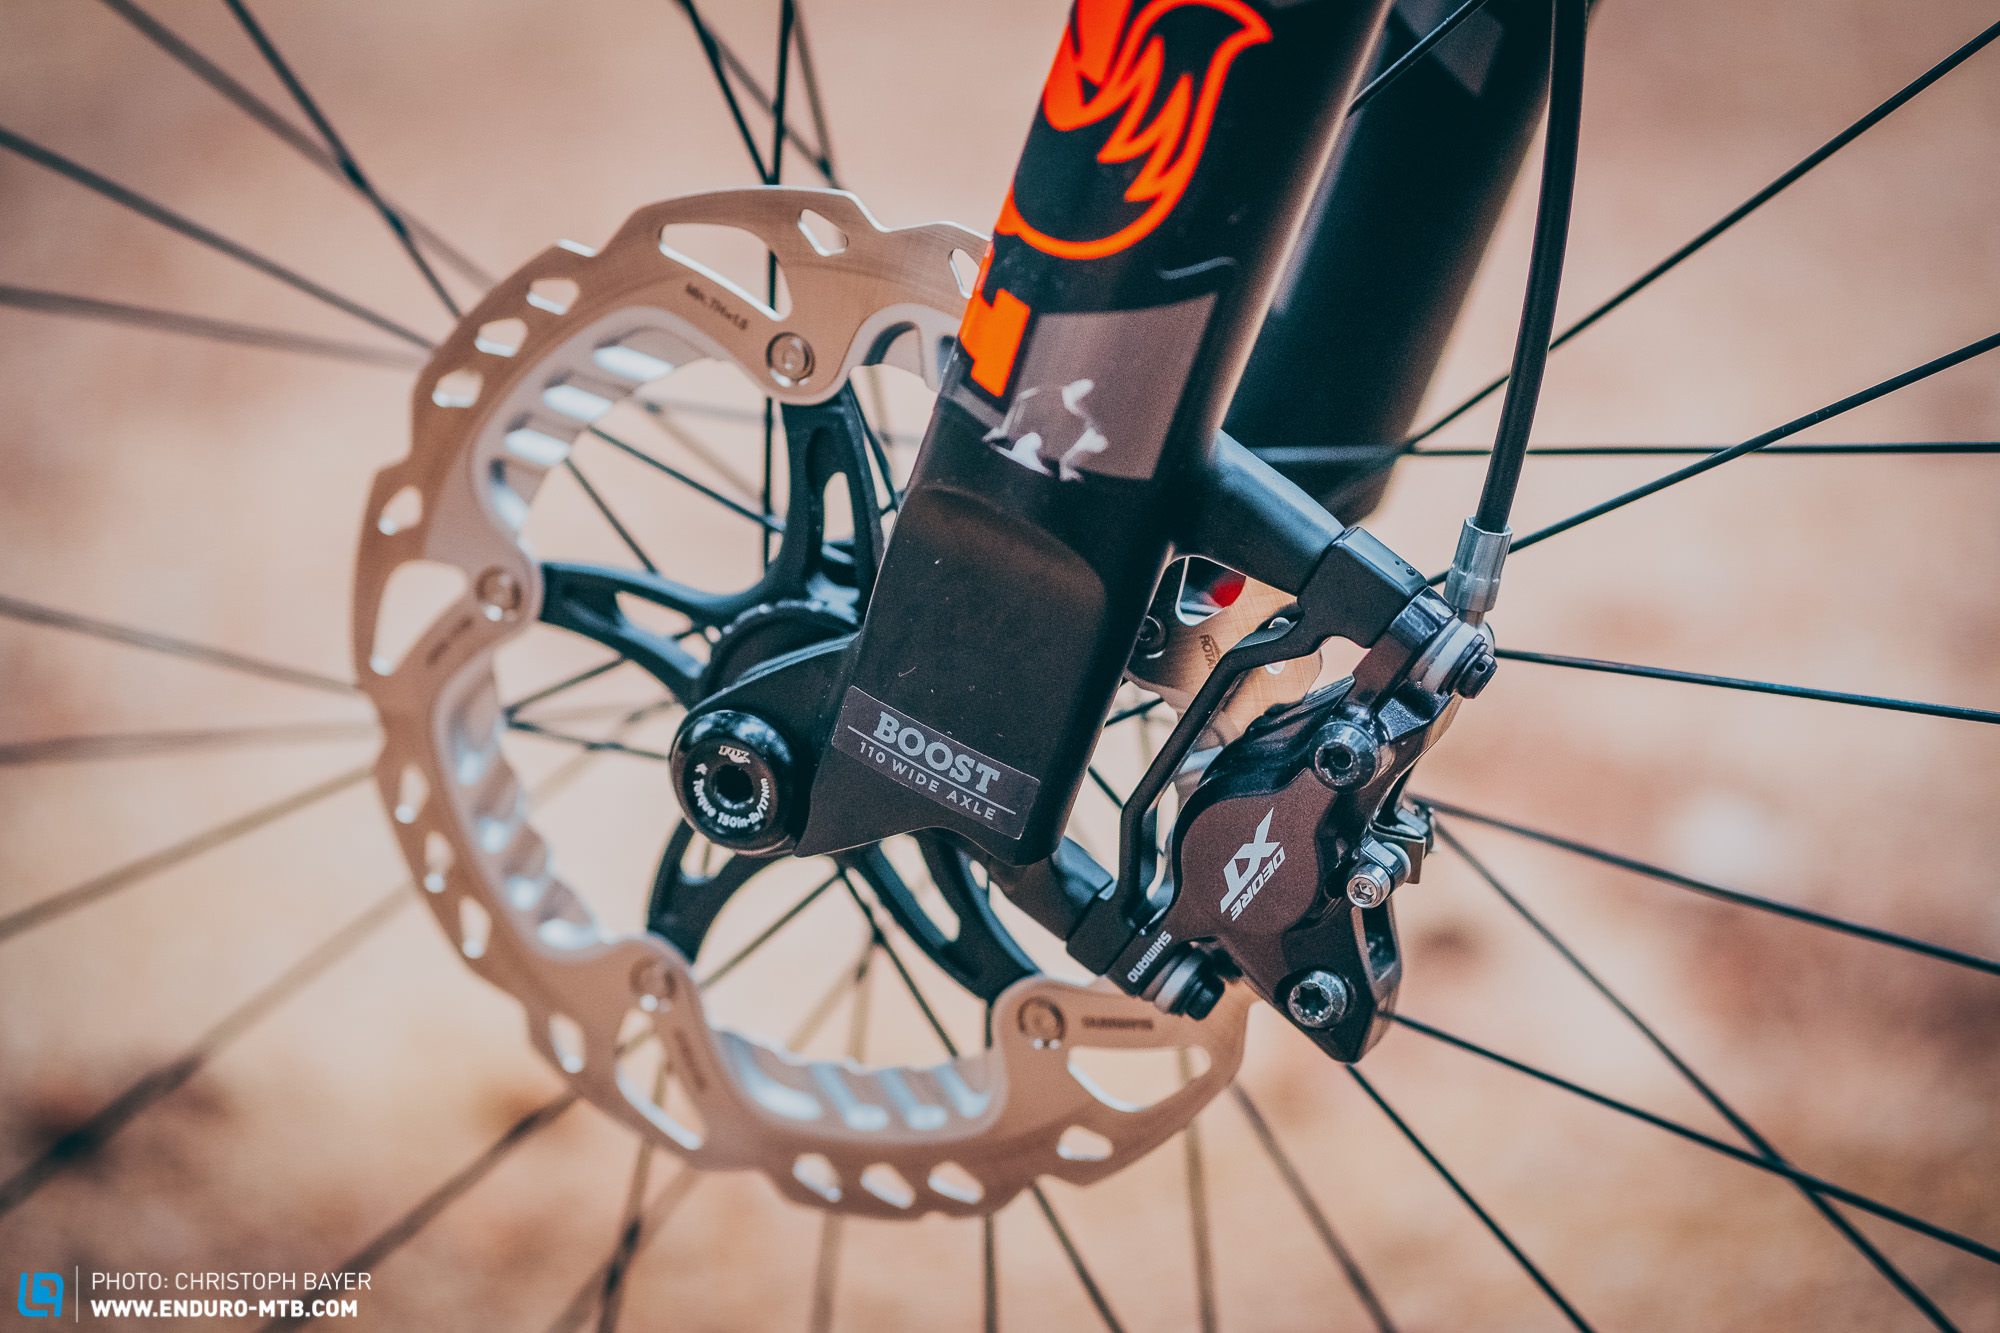 First test: Shimano XT M8100 and SLX M7100 disc brakes